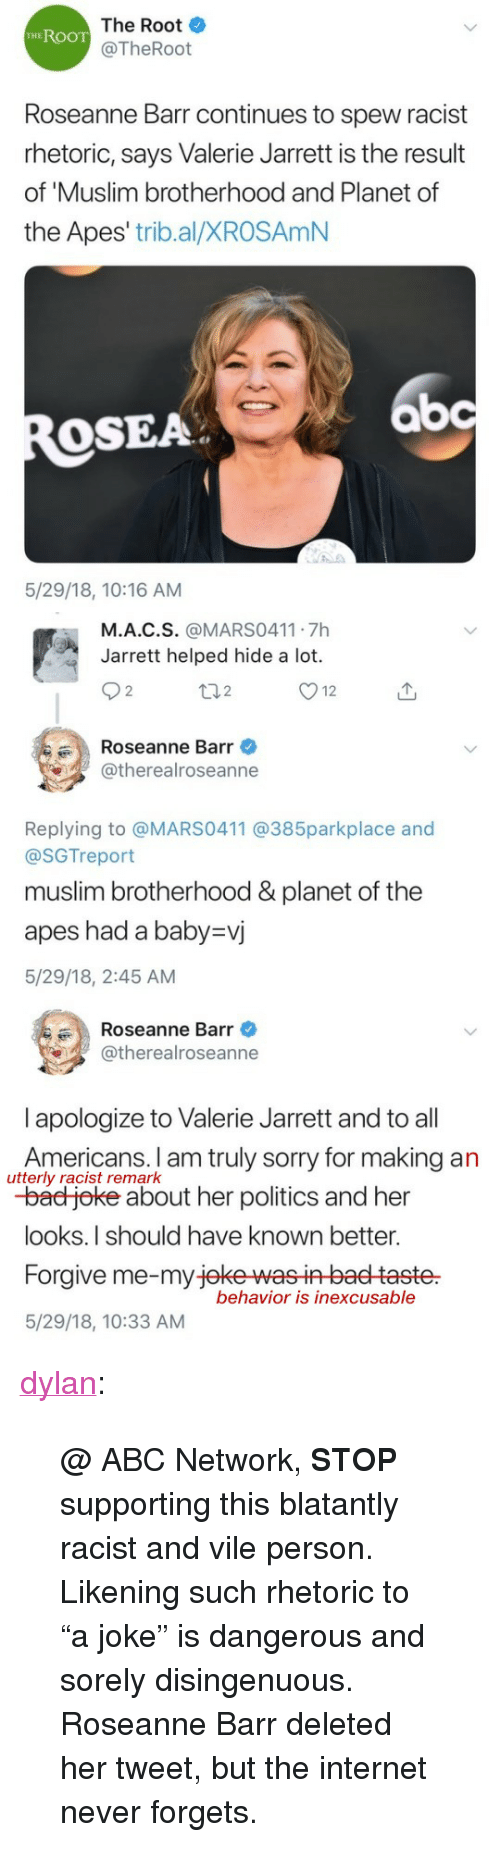 """Abc, Bad, and Internet: The Root  @TheRoot  HEROOT  Roseanne Barr continues to spew racist  rhetoric, says Valerie Jarrett is the result  of 'Muslim brotherhood and Planet of  the Apes' trib.al/XROSAmN  bc  OSEA  5/29/18, 10:16 AM   M.A.C.S. @MARS0411 7h  Jarrett helped hide a lot.  2  2  Roseanne Barr  @therealroseanne  Replying to @MARS0411 @385parkplace and  @SGTreport  muslim brotherhood &planet of the  apes had a baby-vj  5/29/18, 2:45 AM   Roseanne Barr  @therealroseanne  l apologize to Valerie Jarrett and to all  Americans. I am truly sorry for making an  -bad joke about her politics and her  looks.I should have known better.  Forgive me-my jeke wasin baet taste  5/29/18, 10:33 AM  utterly racist remark  behavior is inexcusable <p><a href=""""https://dylan.tumblr.com/post/174371828198/abc-network-stop-supporting-this-blatantly"""" class=""""tumblr_blog"""">dylan</a>:</p><blockquote> <p>@ ABC Network, <b>STOP</b> supporting this blatantly racist and vile person.</p> <p>Likening such rhetoric to """"a joke"""" is dangerous and sorely disingenuous.</p> <p>Roseanne Barr deleted her tweet, but the internet never forgets.</p> </blockquote>"""